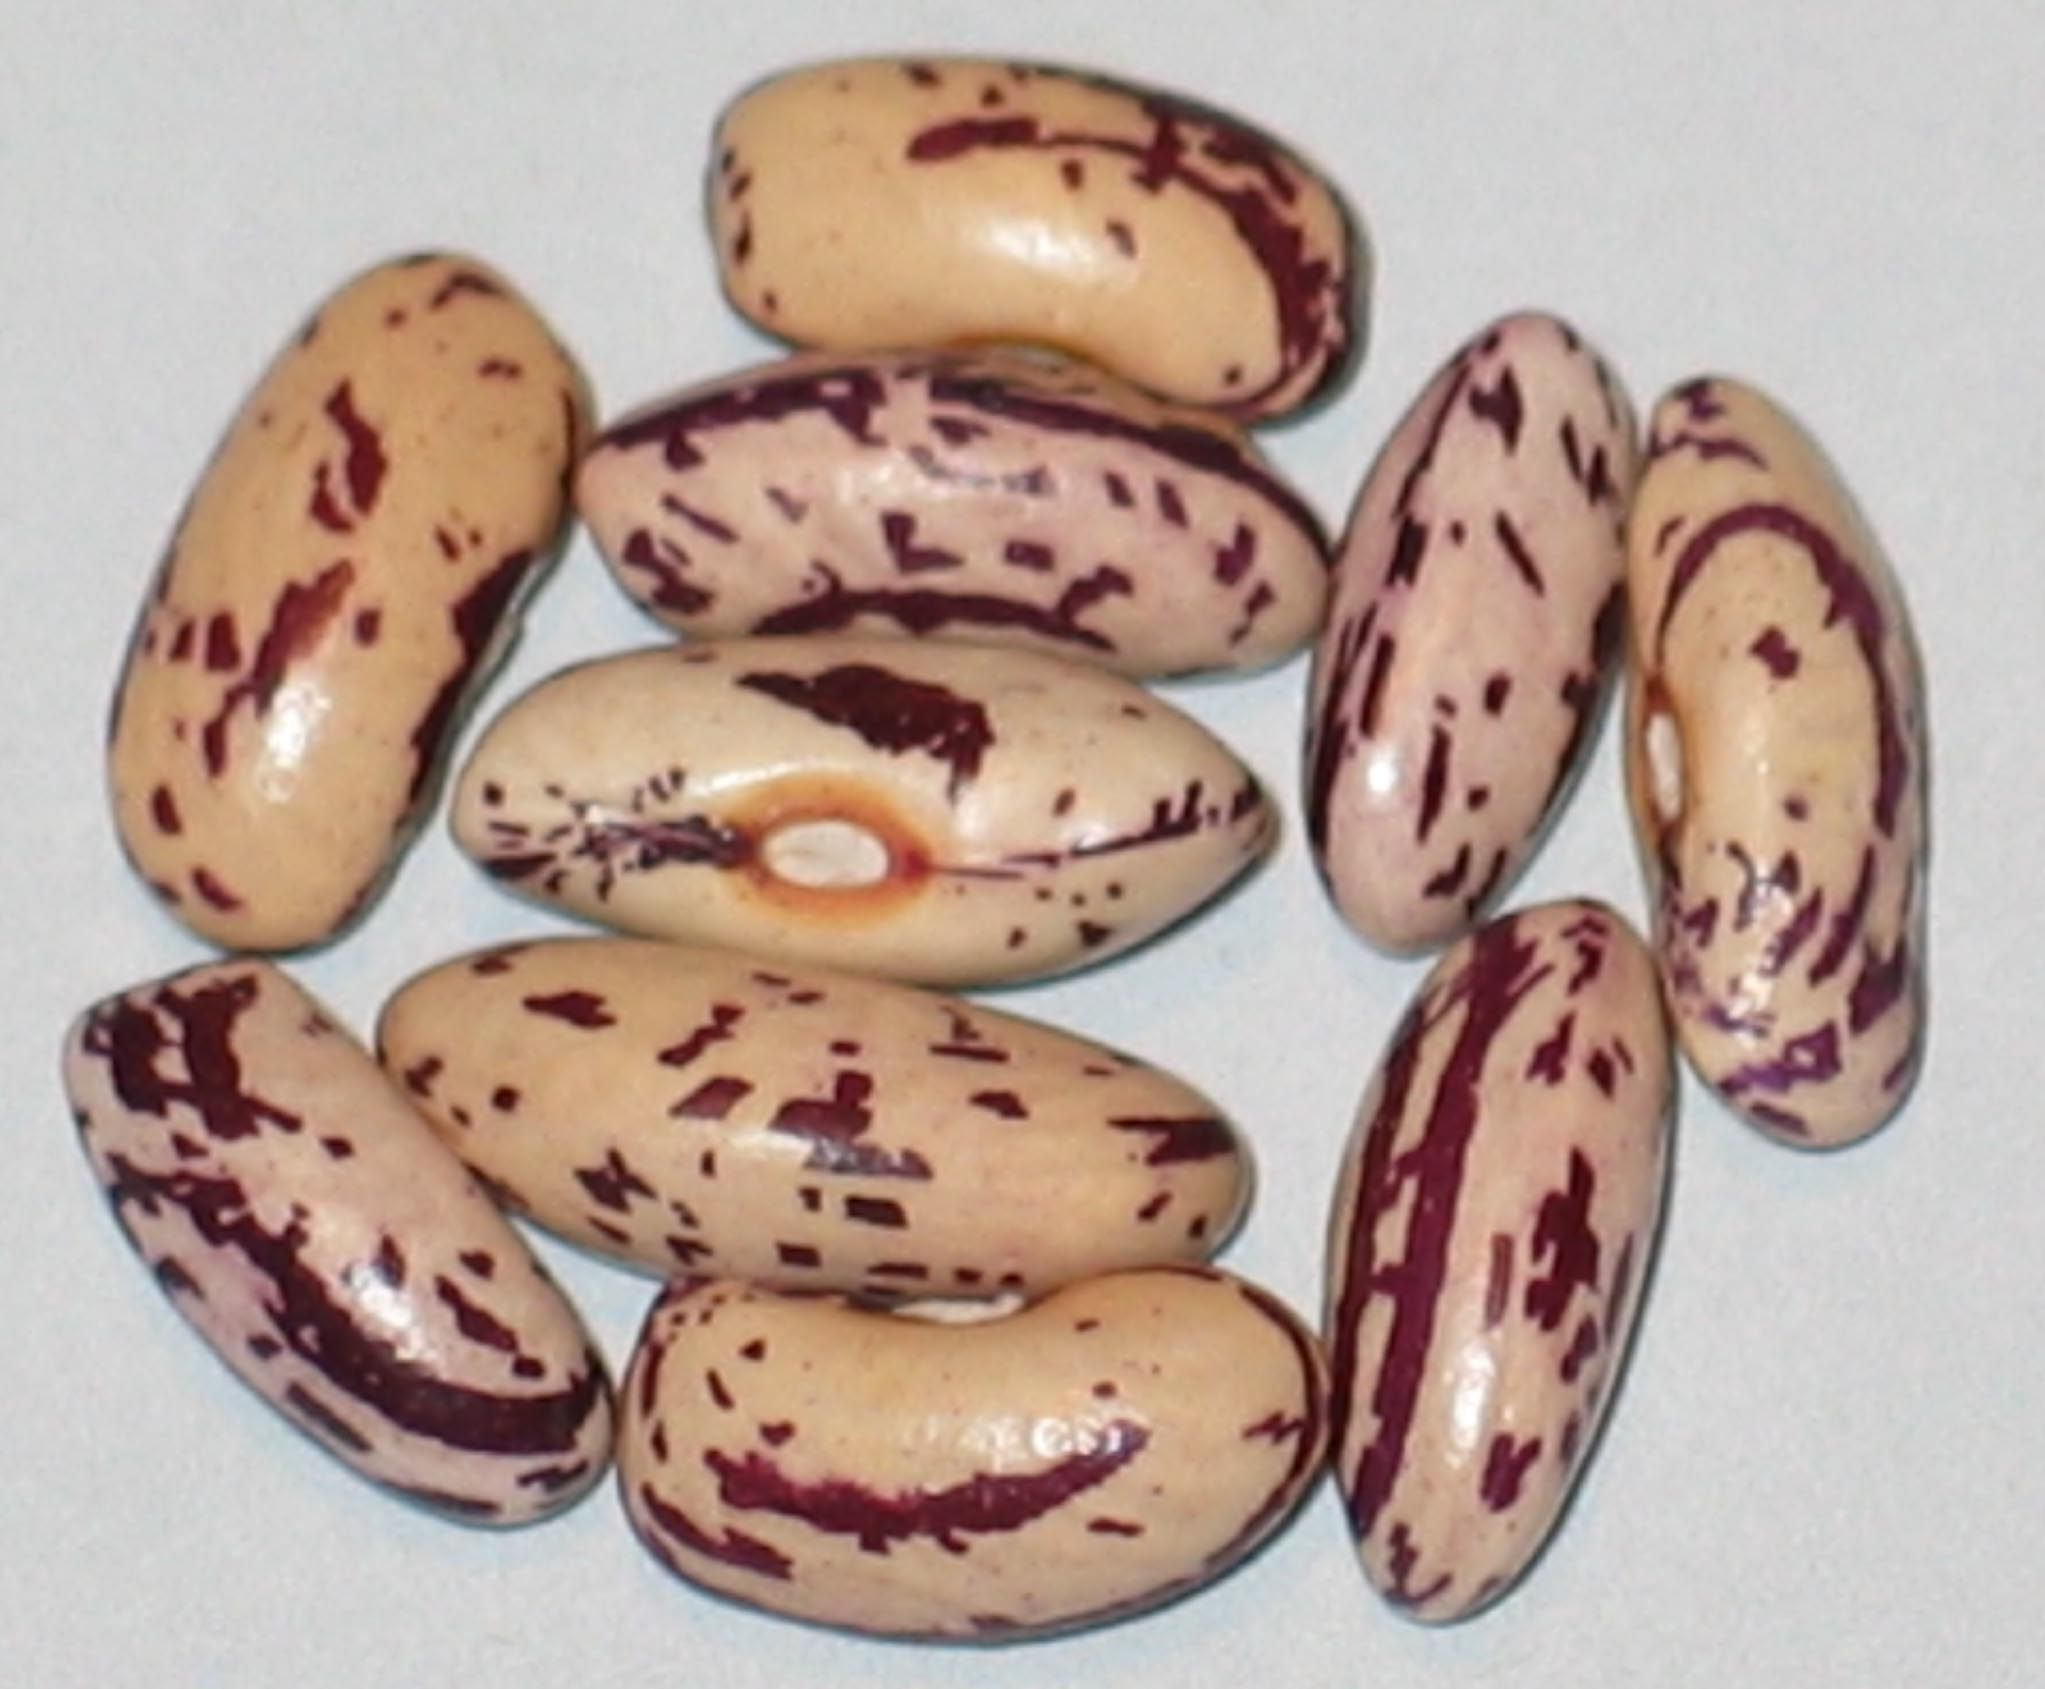 image of Avalon beans